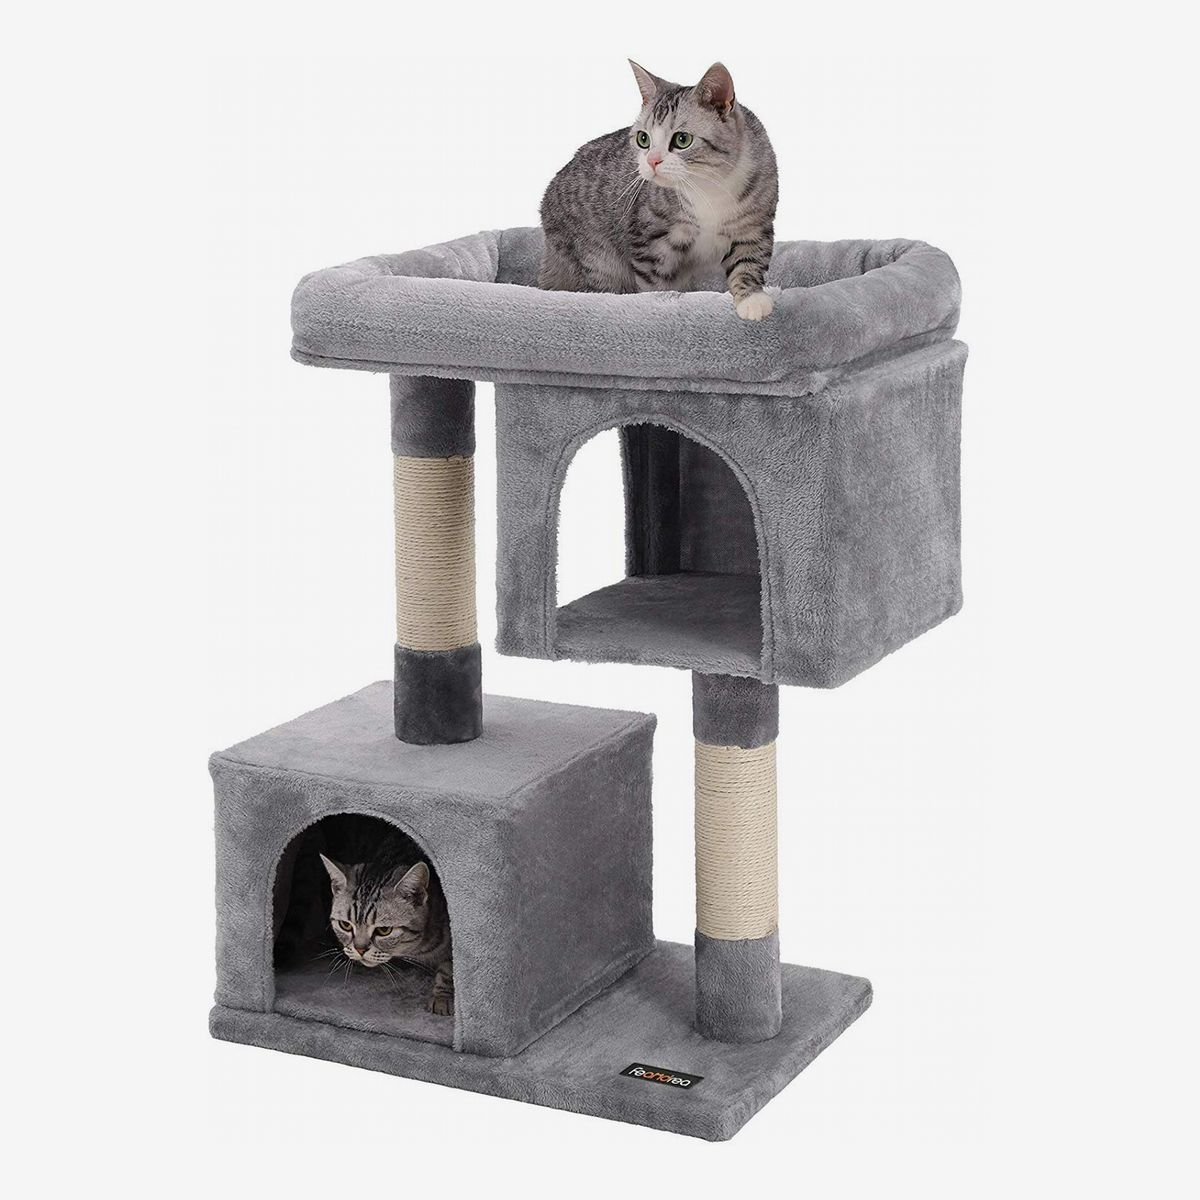 10 Best Cat Trees 2021 The Strategist New York Magazine